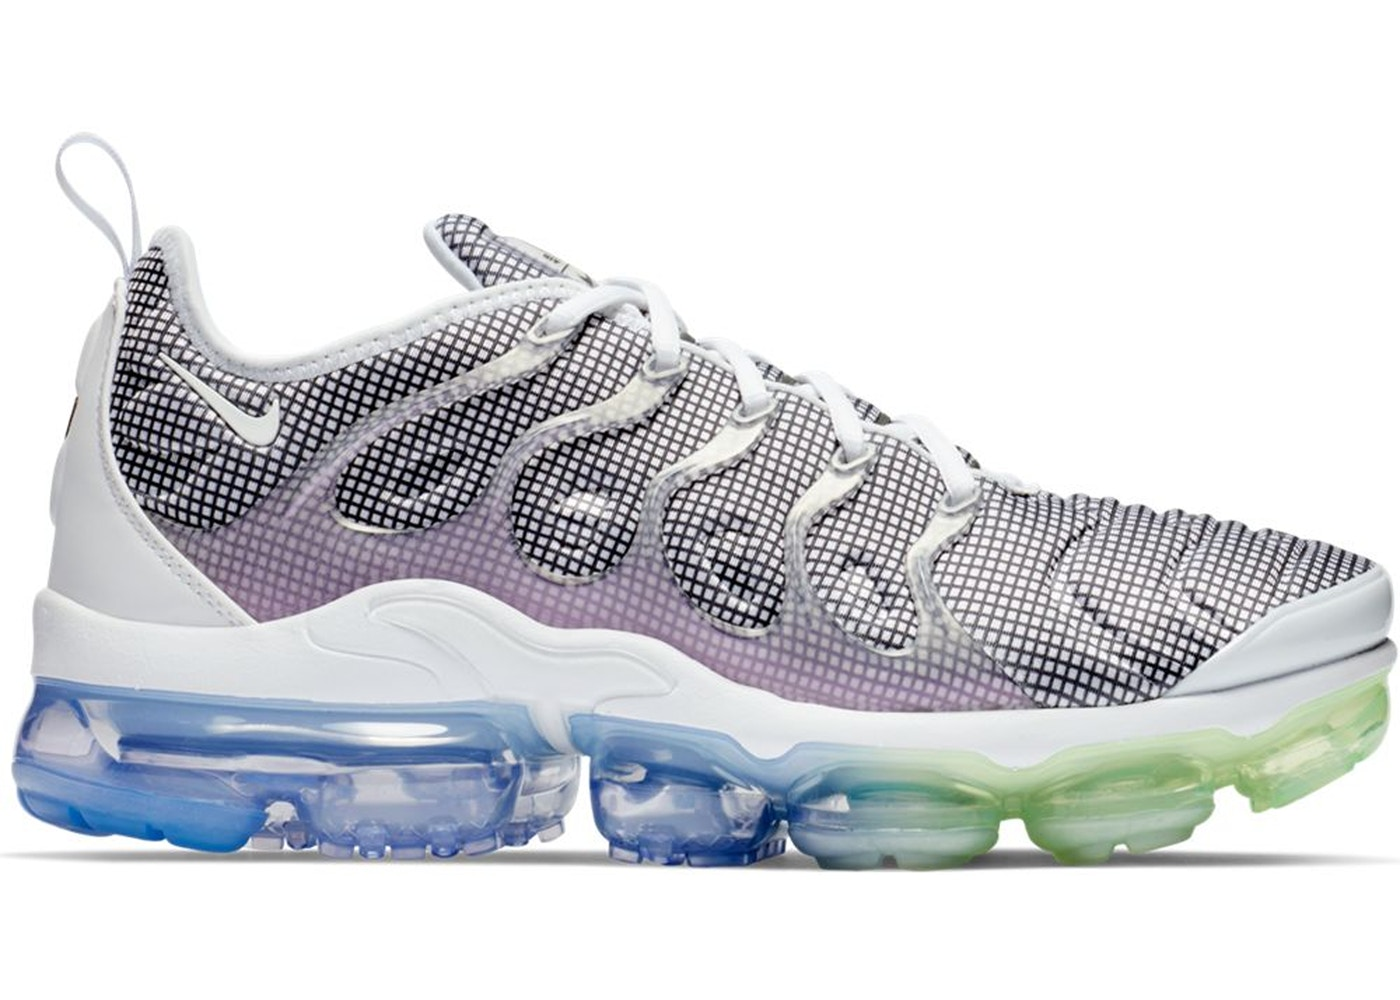 8db2ddc66b4 Air VaporMax Plus Grid Print - 924453-105